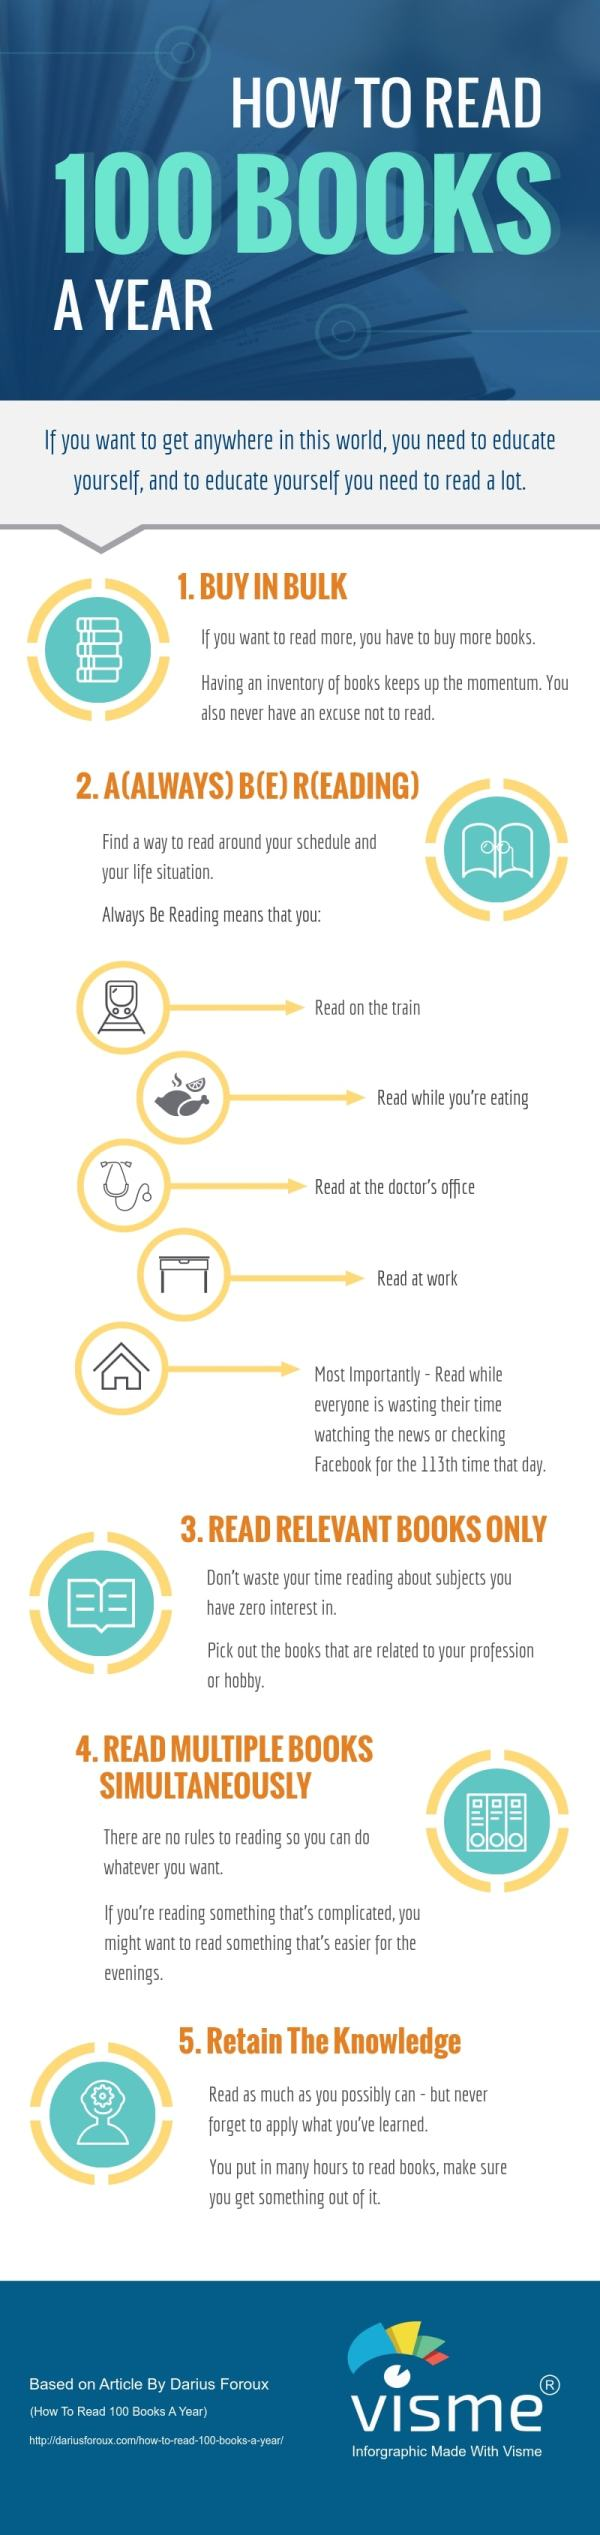 Infographic: How to Read 100 Books in a Year Infographic